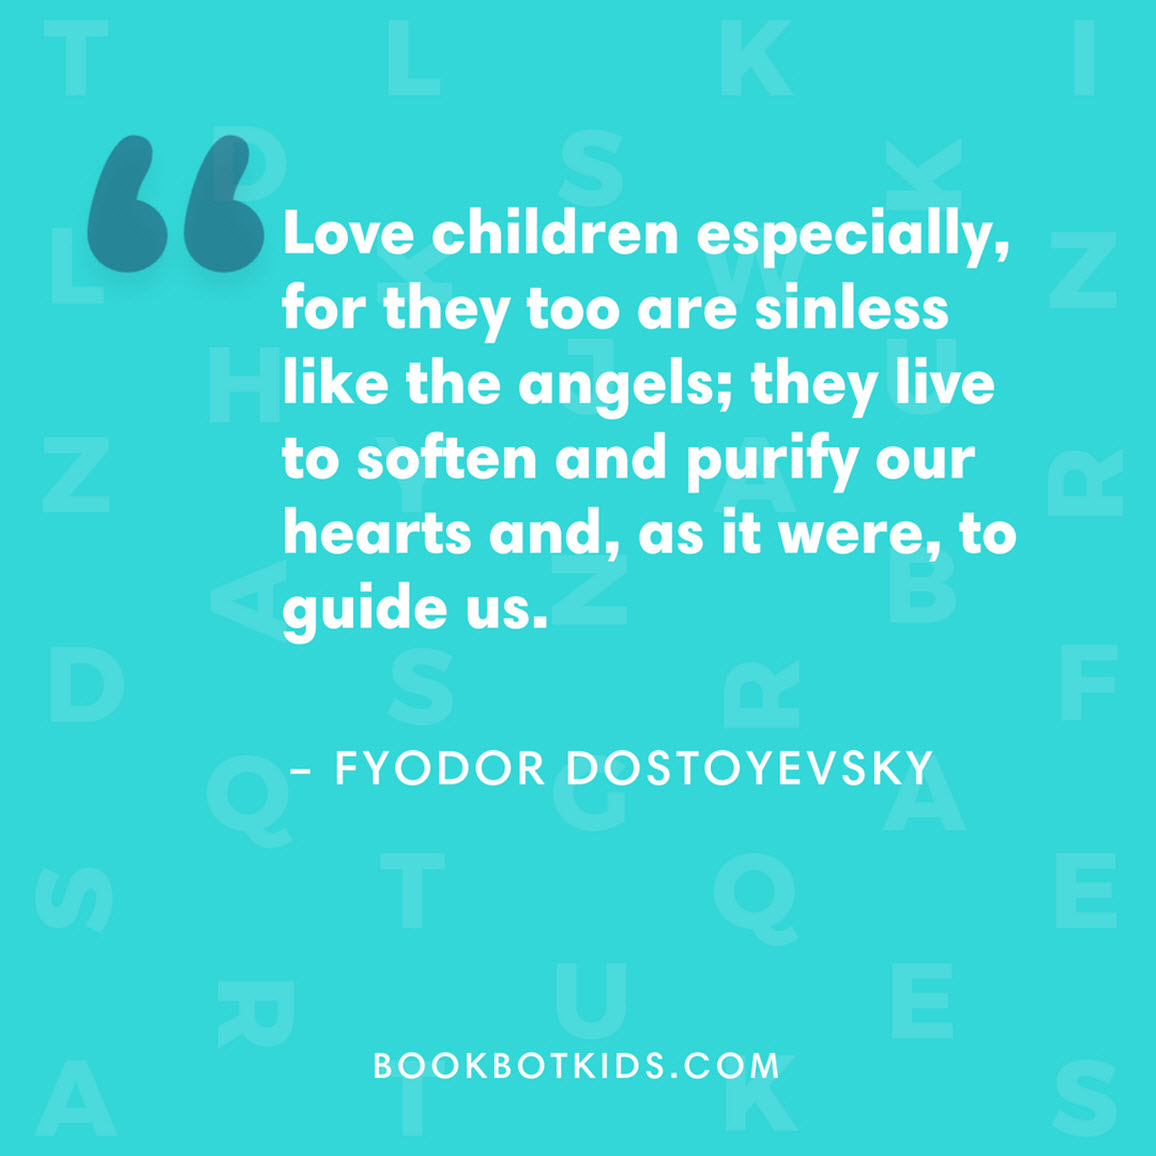 Love children especially, for they too are sinless like the angels; they live to soften and purify our hearts and, as it were, to guide us. – Fyodor Dostoyevsky